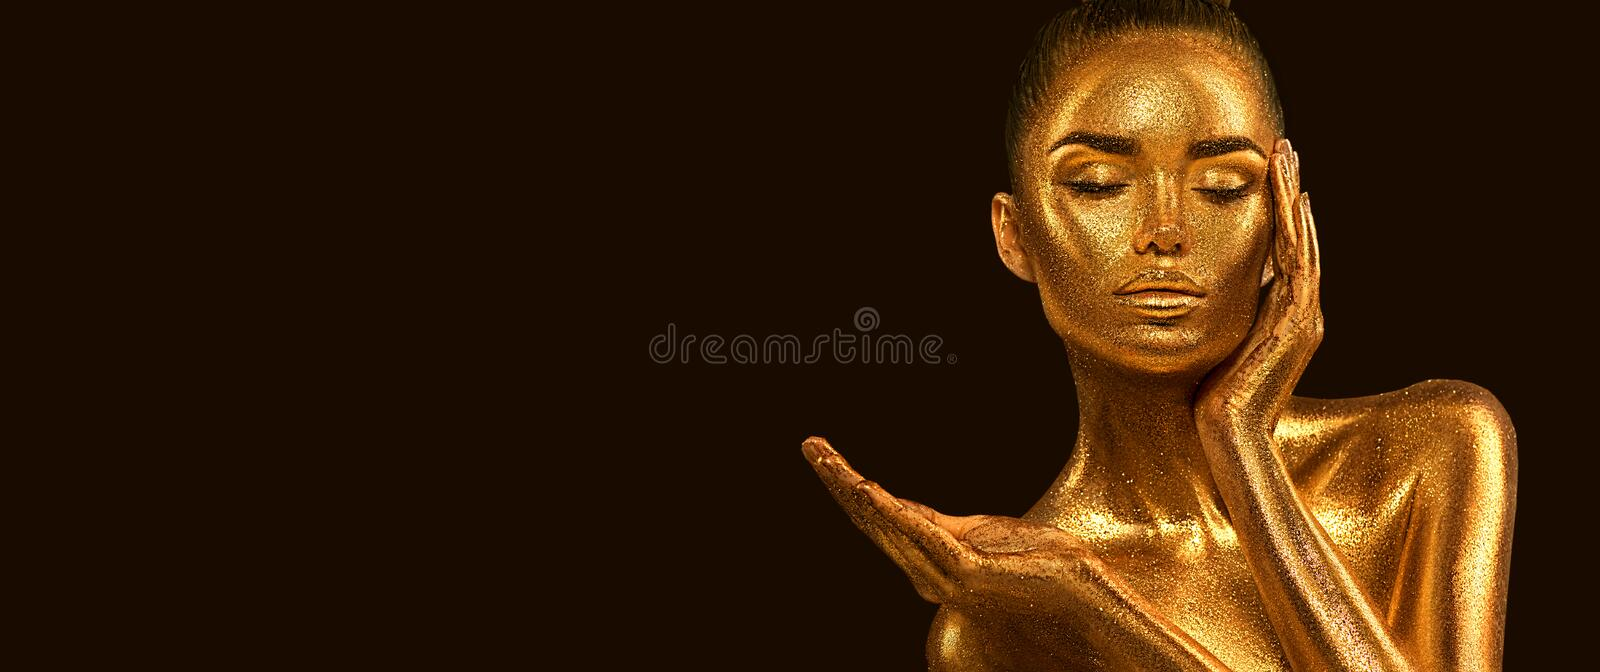 Fashion art Golden skin Woman face portrait closeup. Model girl with holiday golden Glamour shiny makeup. Sequins. Gold jewellery stock photos